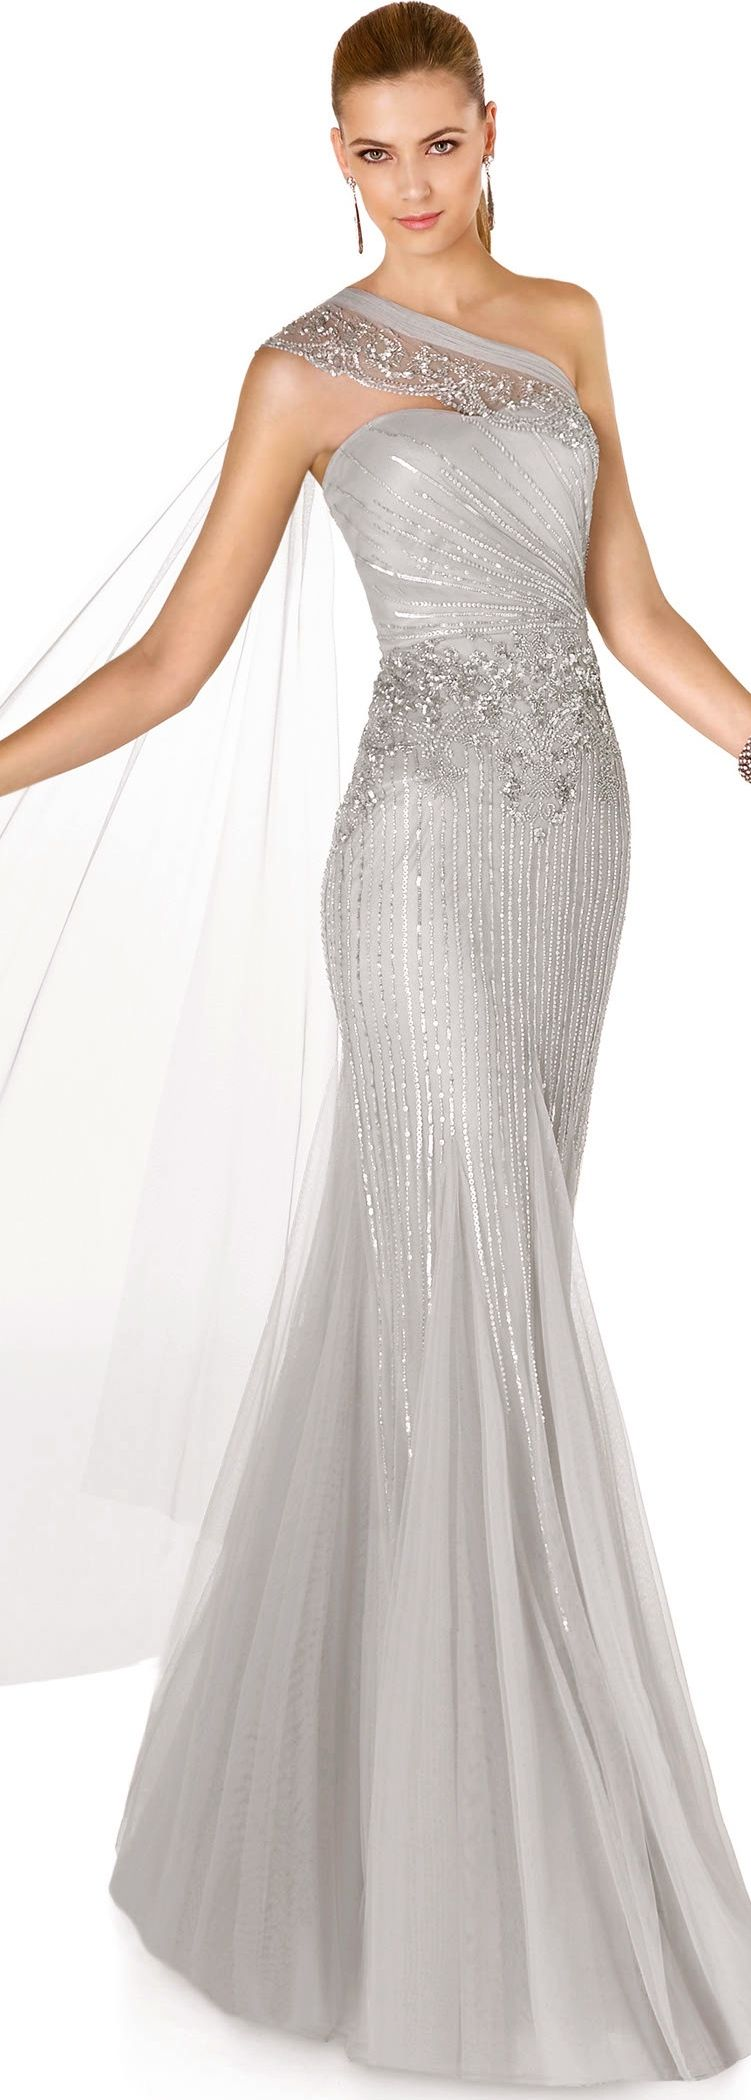 best gowns images on pinterest graduation night and formal dresses